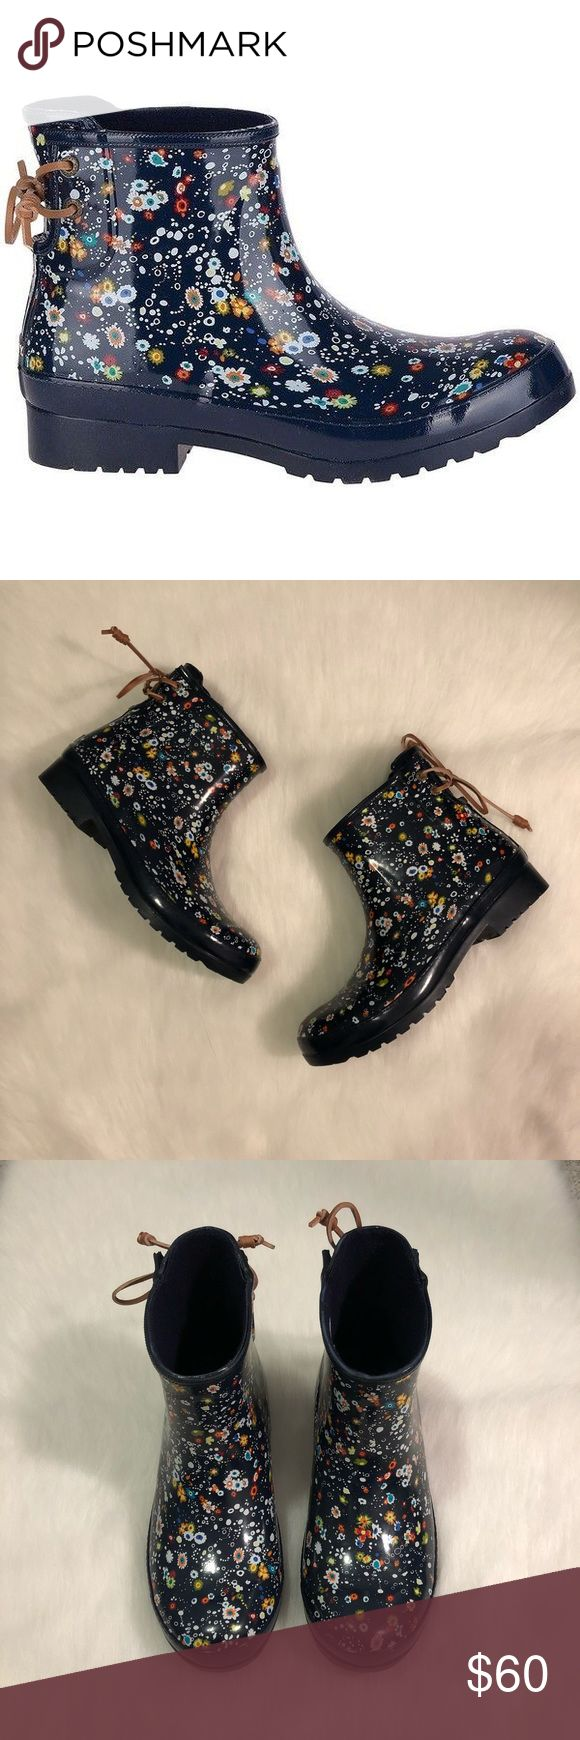 Sperry Walker Turf Floral Rubber Rain Boots Sperry's Walker rubber rain boots are perfect for spring! Adorable floral print with lace up back. Brand new in box and sold out everywhere! Please ask questions before purchase as all sales are final. Sperry Shoes Winter & Rain Boots